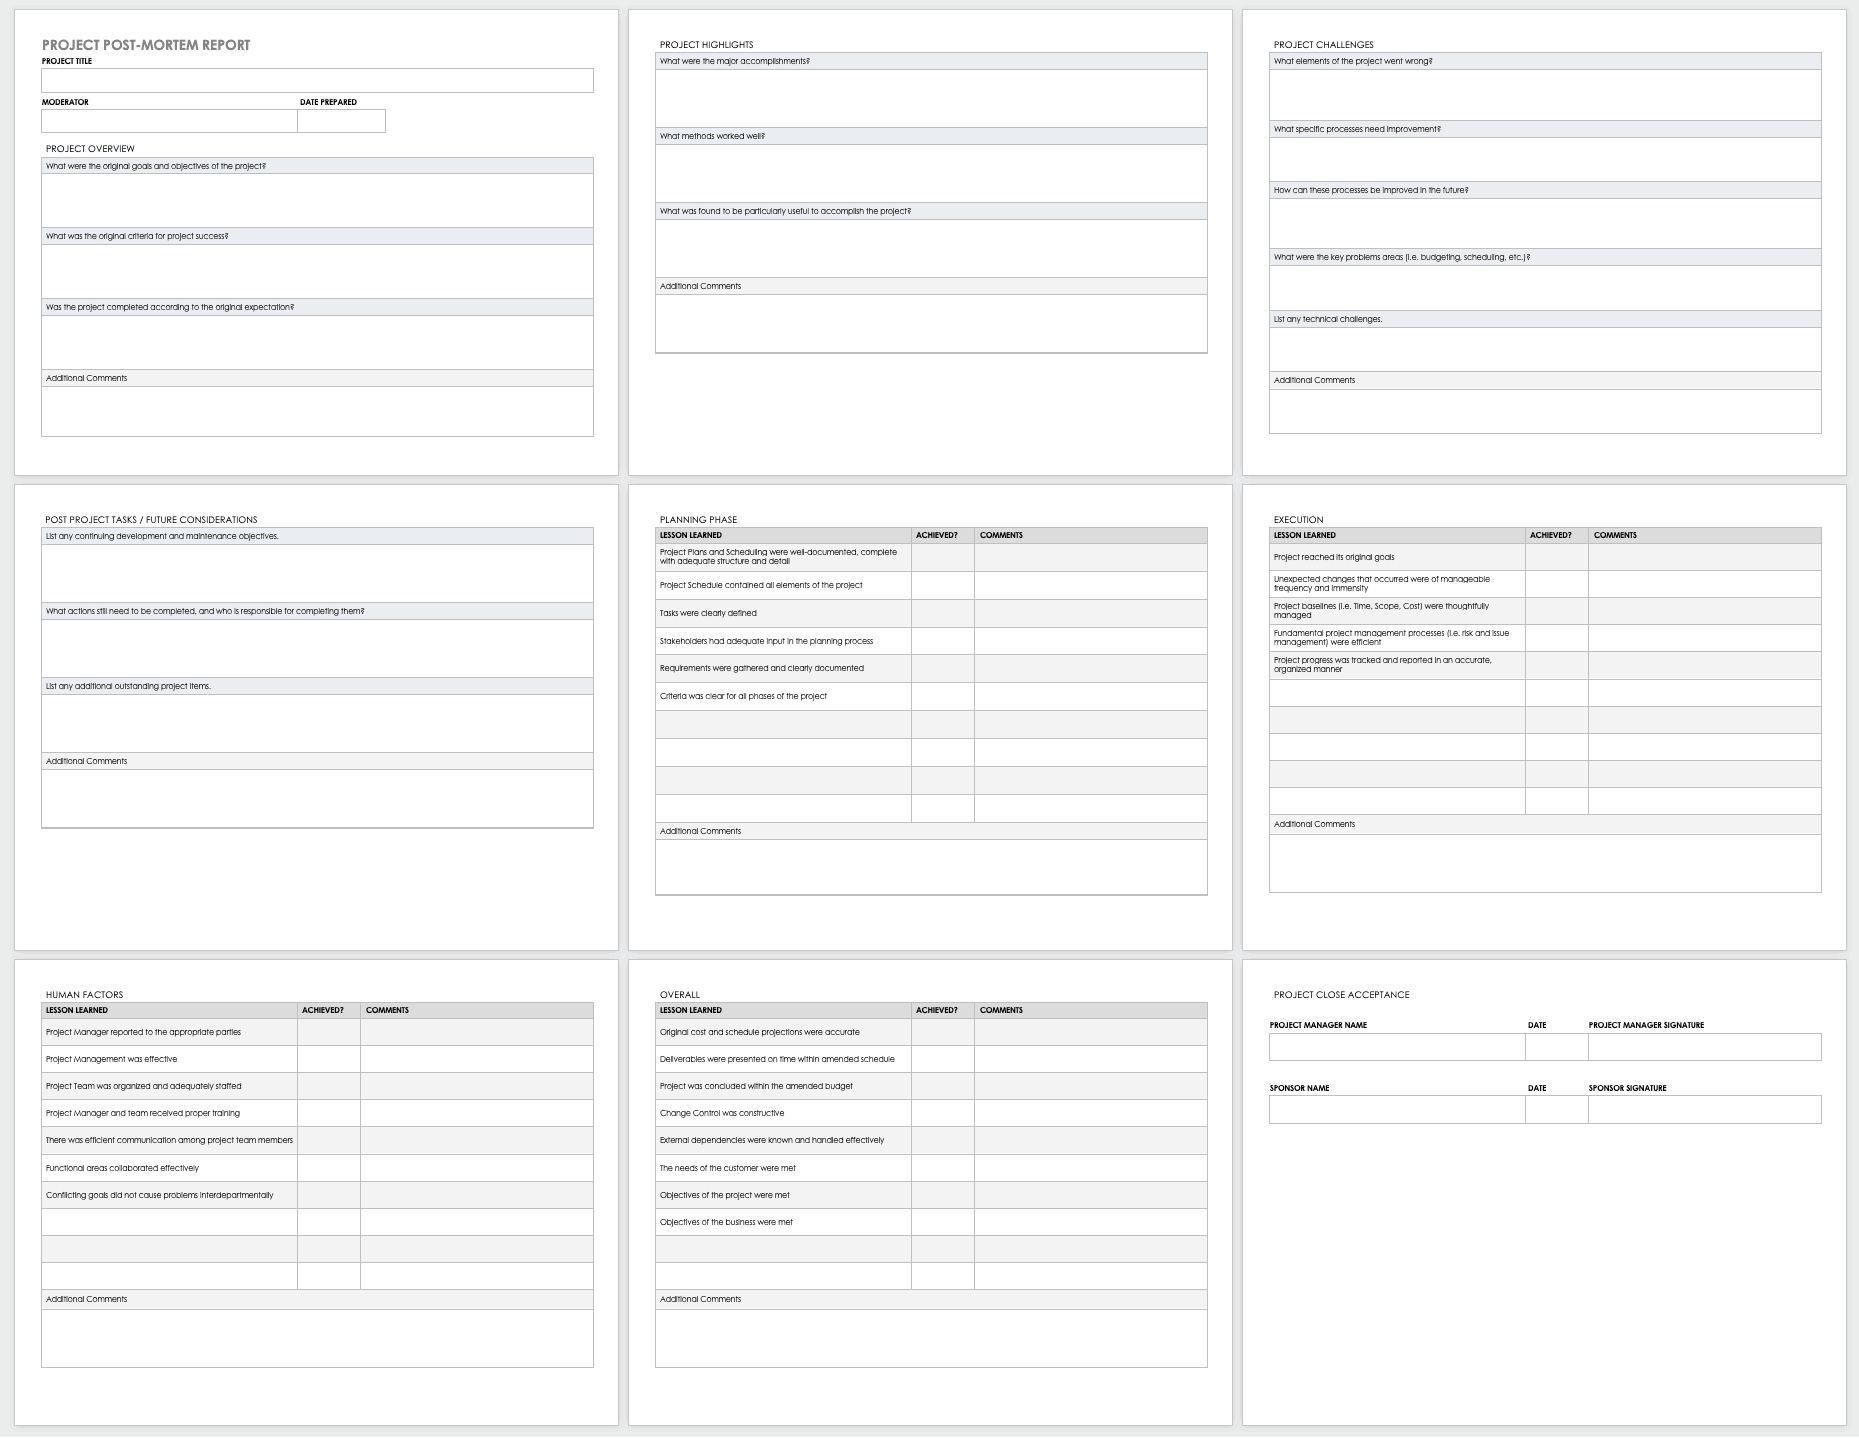 Free Project Report Templates | Smartsheet Within Post Project Report Template